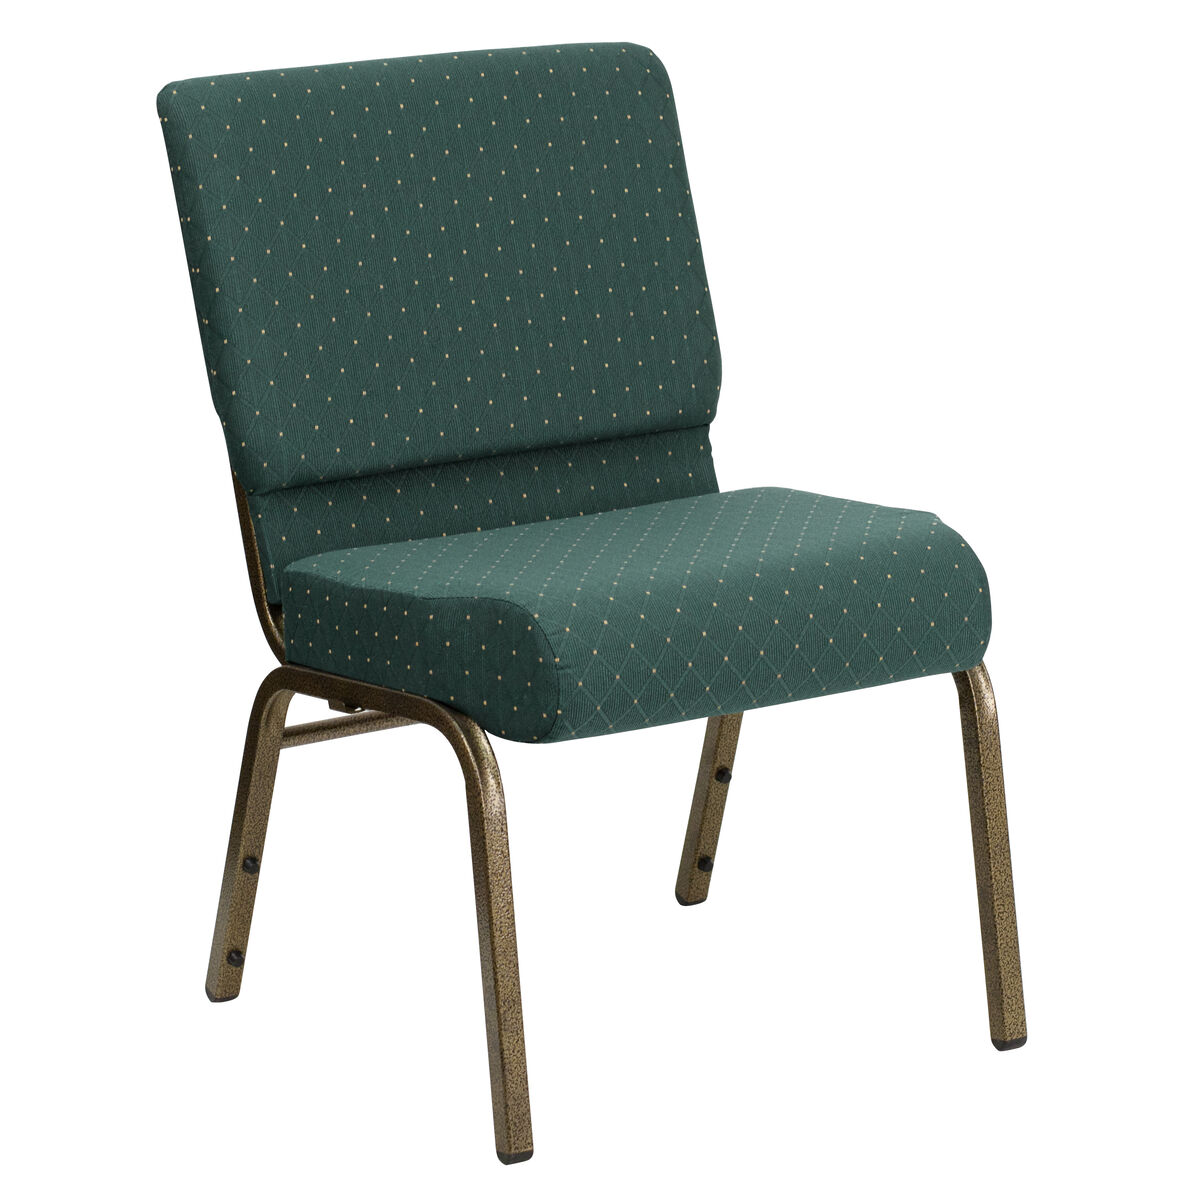 Bizchair. likes. Shop office chairs and furniture and save up to 70%. loretco.ga is the ultimate source for your seating and furniture needs with.